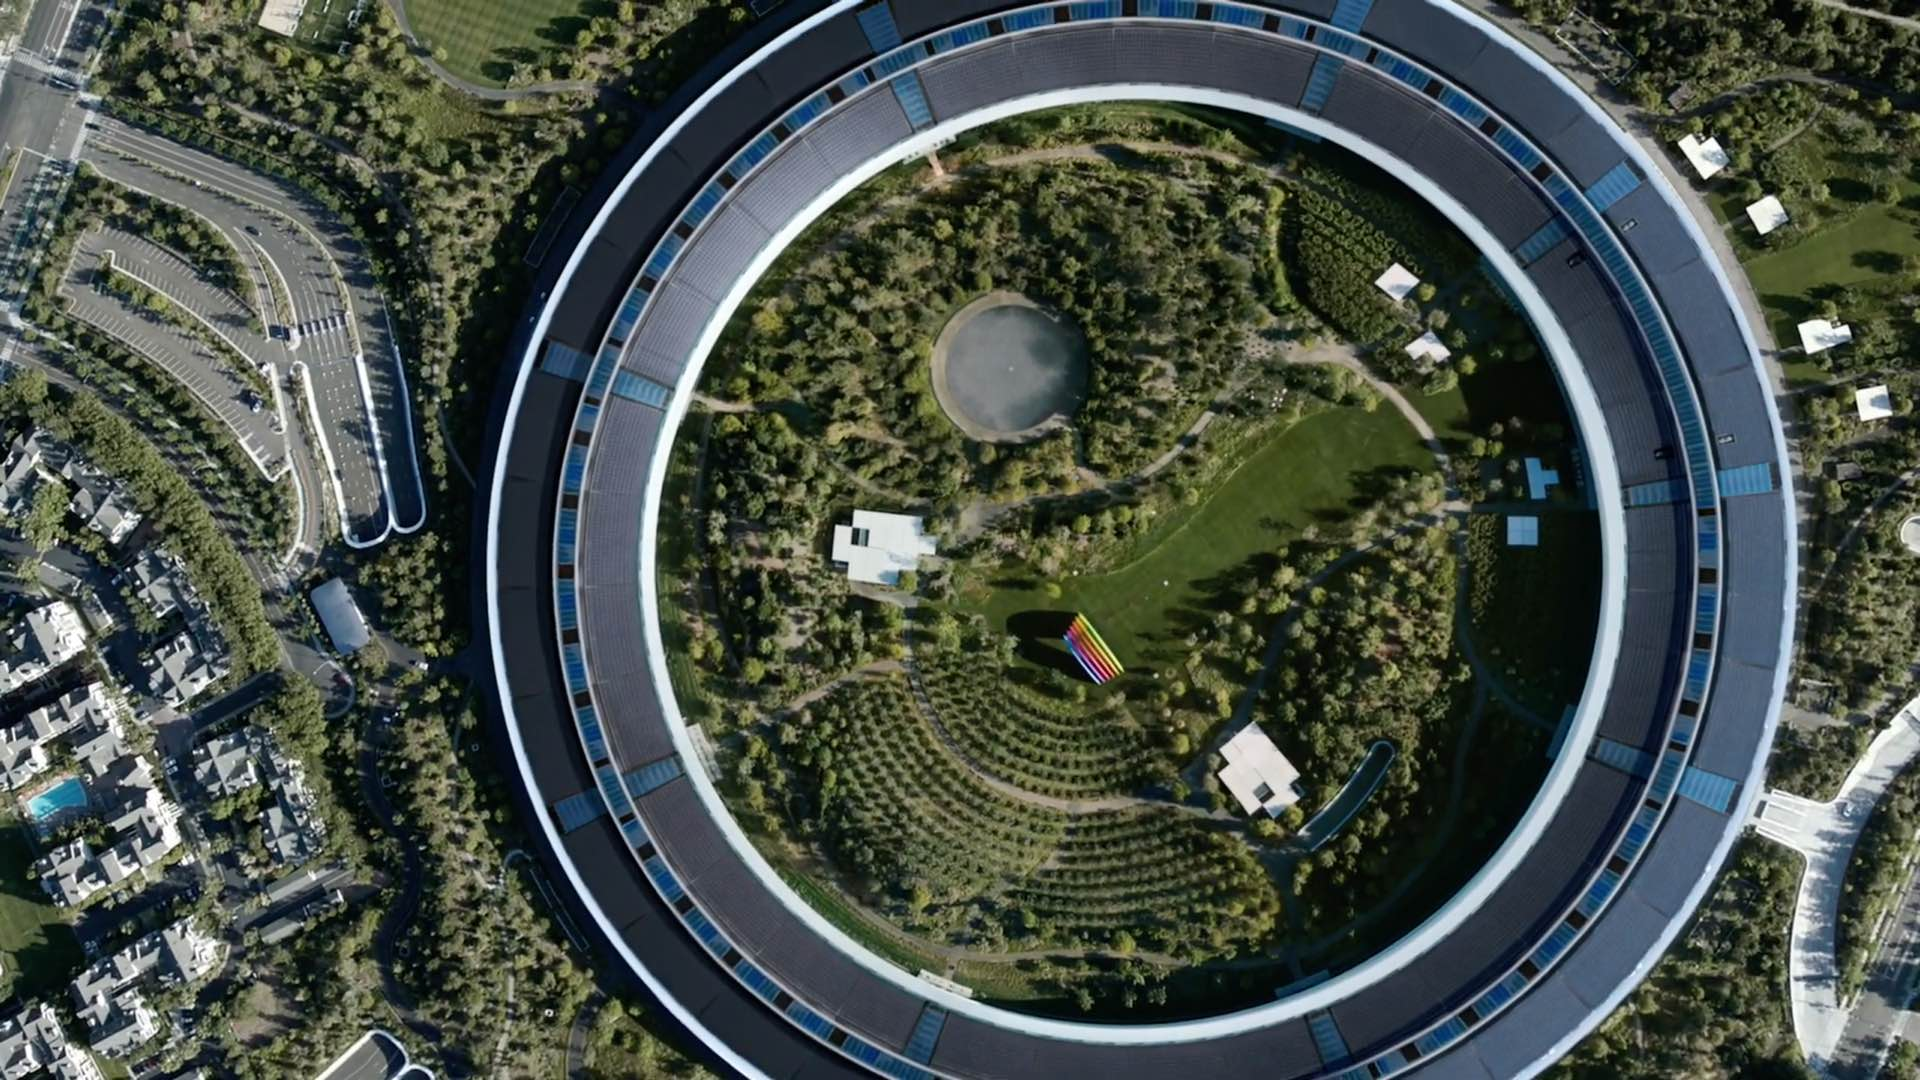 A photo showing an aerial view of the Apple Park headquarters